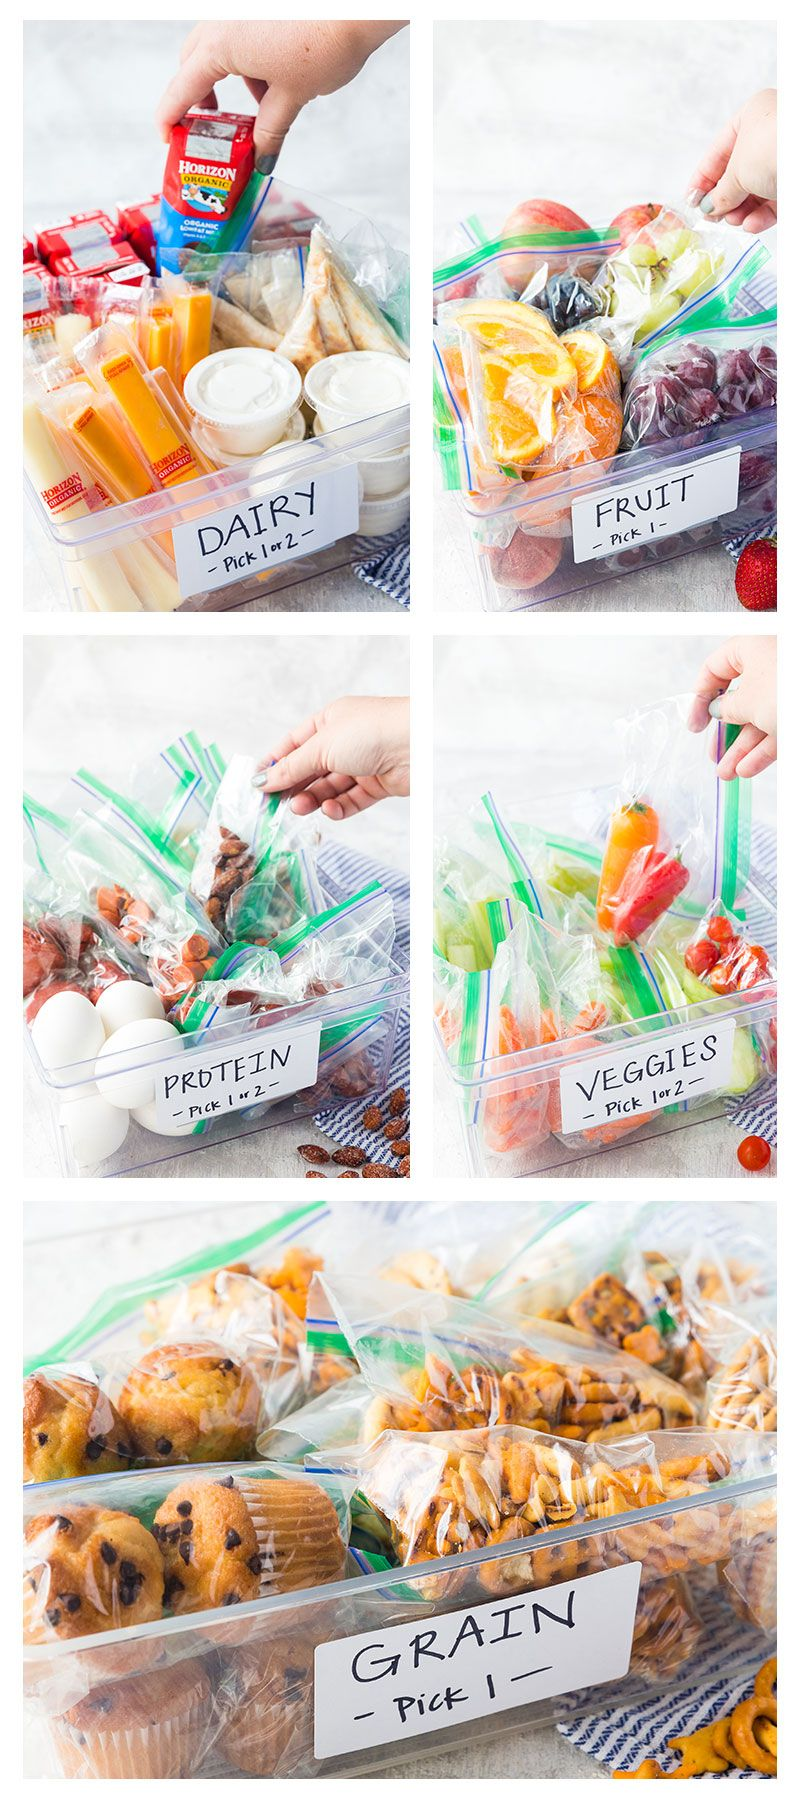 Kids Build Their Own Organic Lunch Routine - Easy Peasy Meals